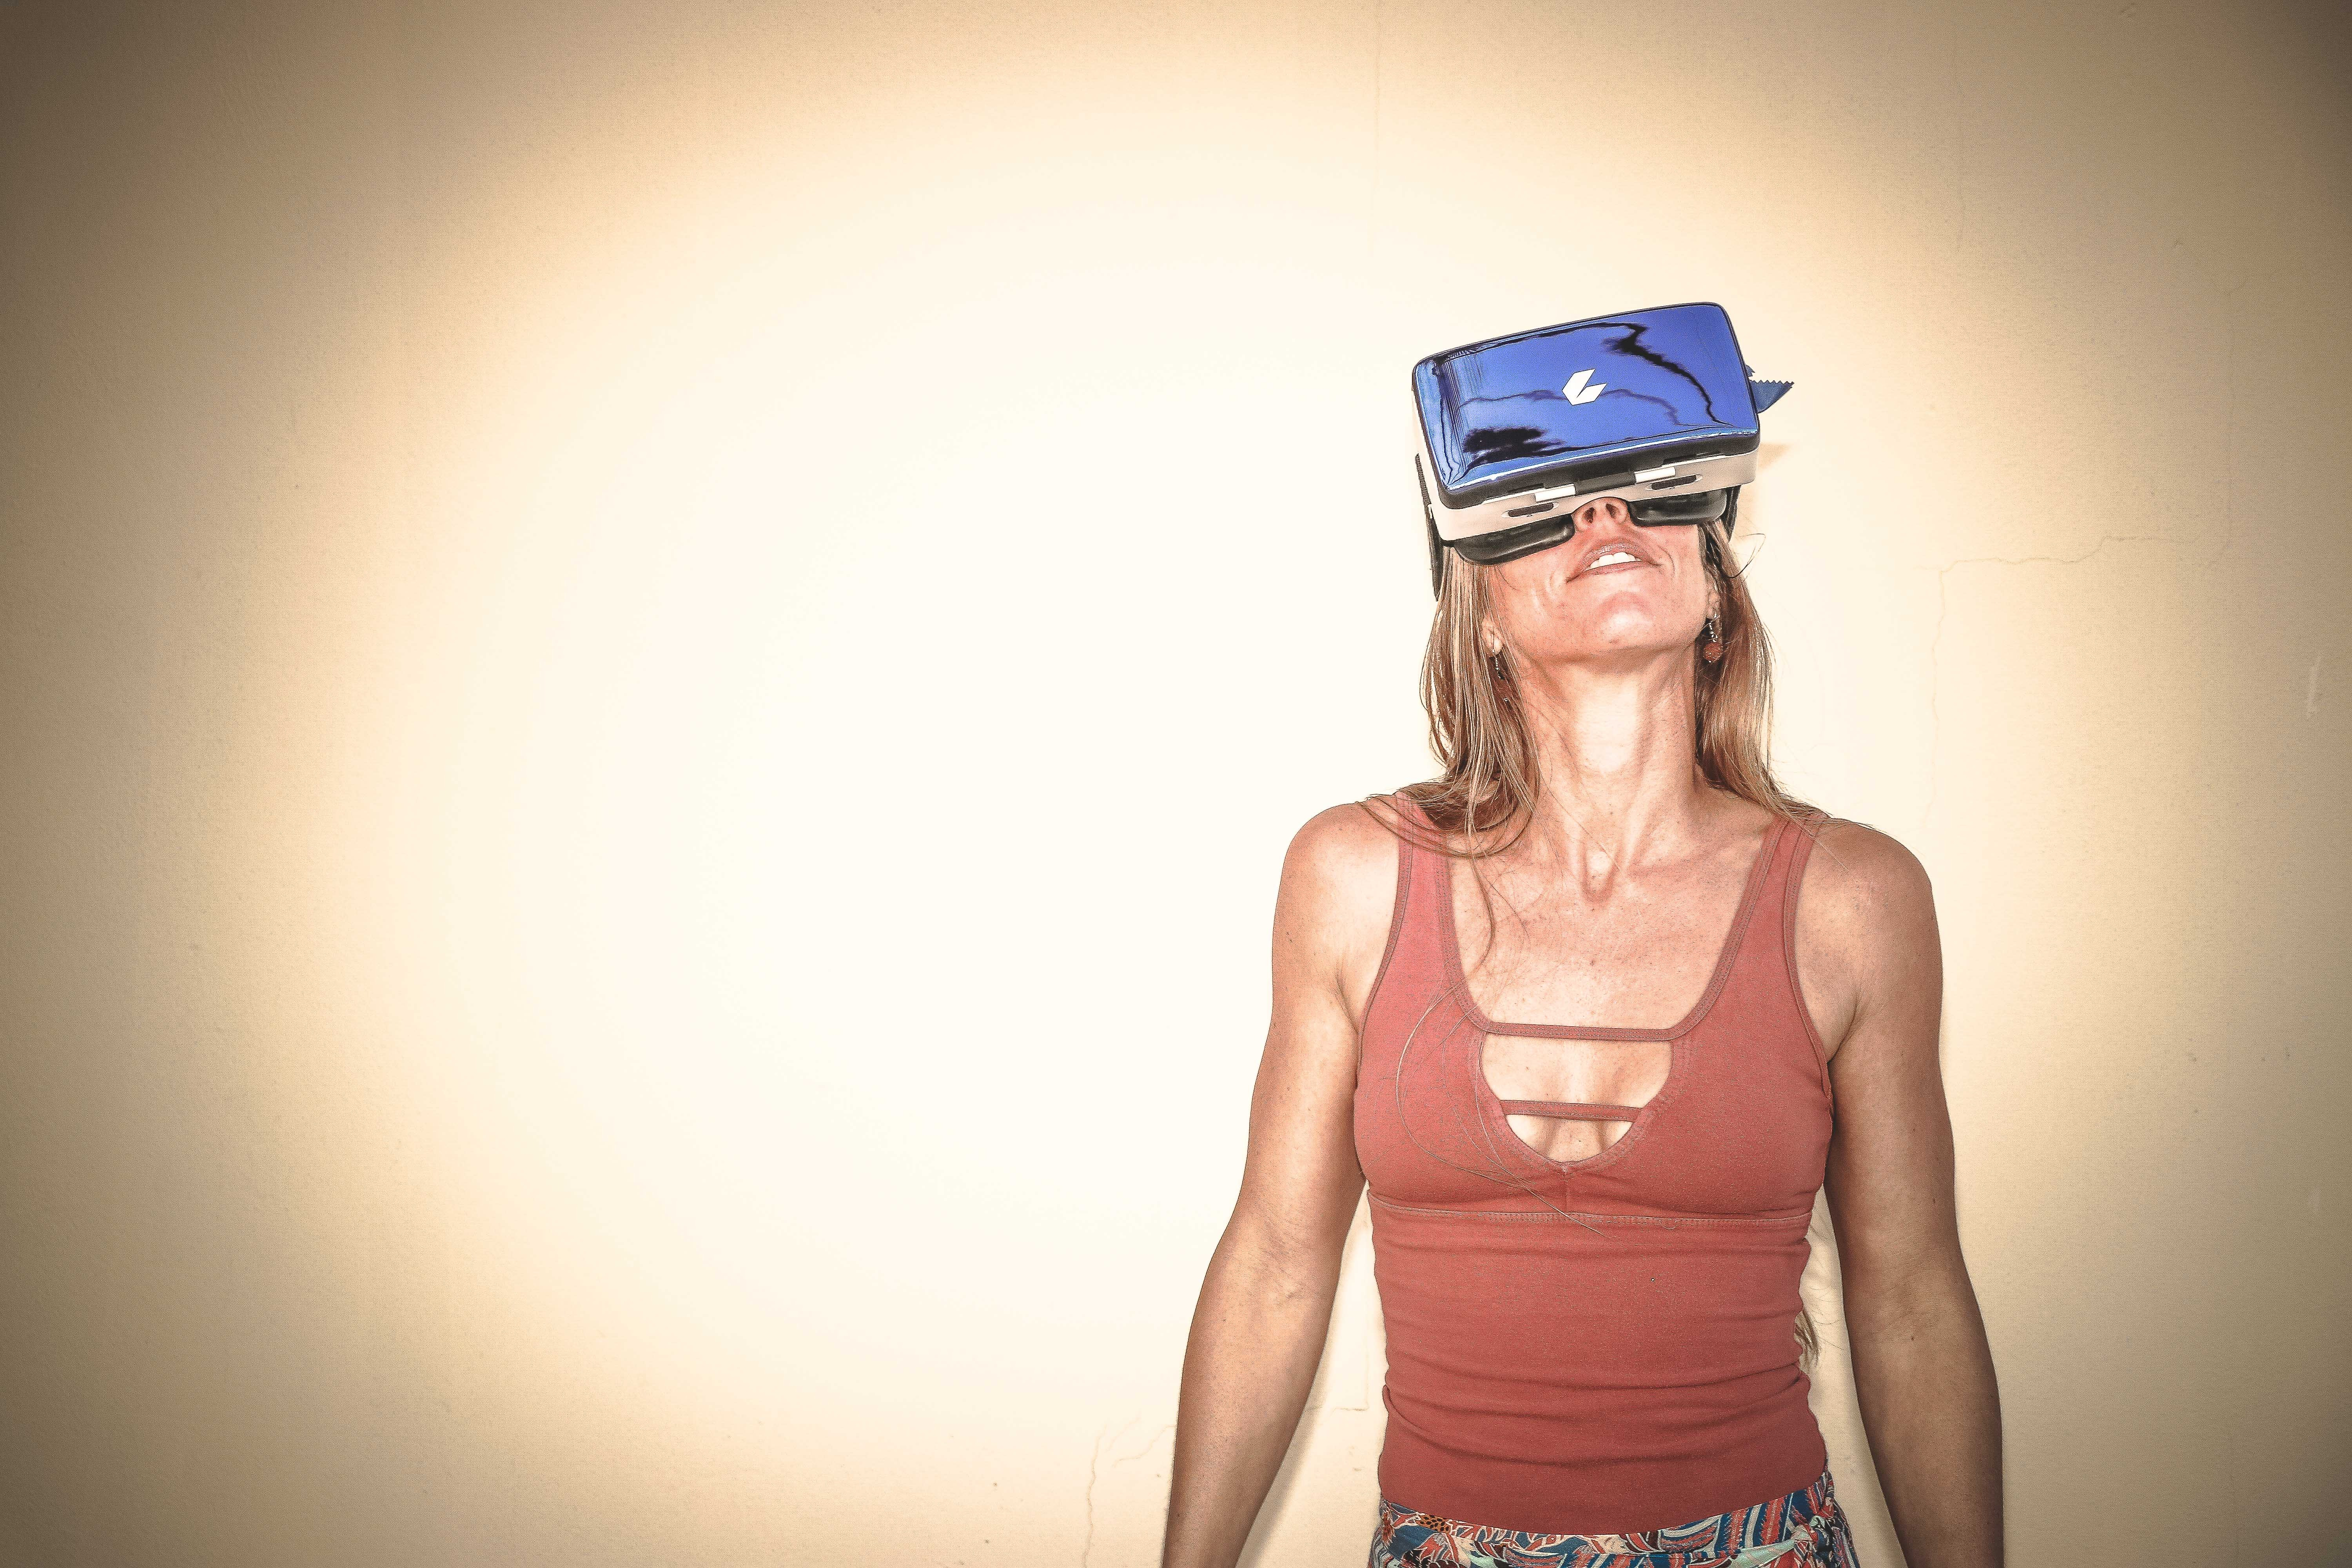 Woman in Brown Cages Sleeveless Top and Blue Virtual Reality Headset, Fashion, Female, Girl, Hair, HQ Photo